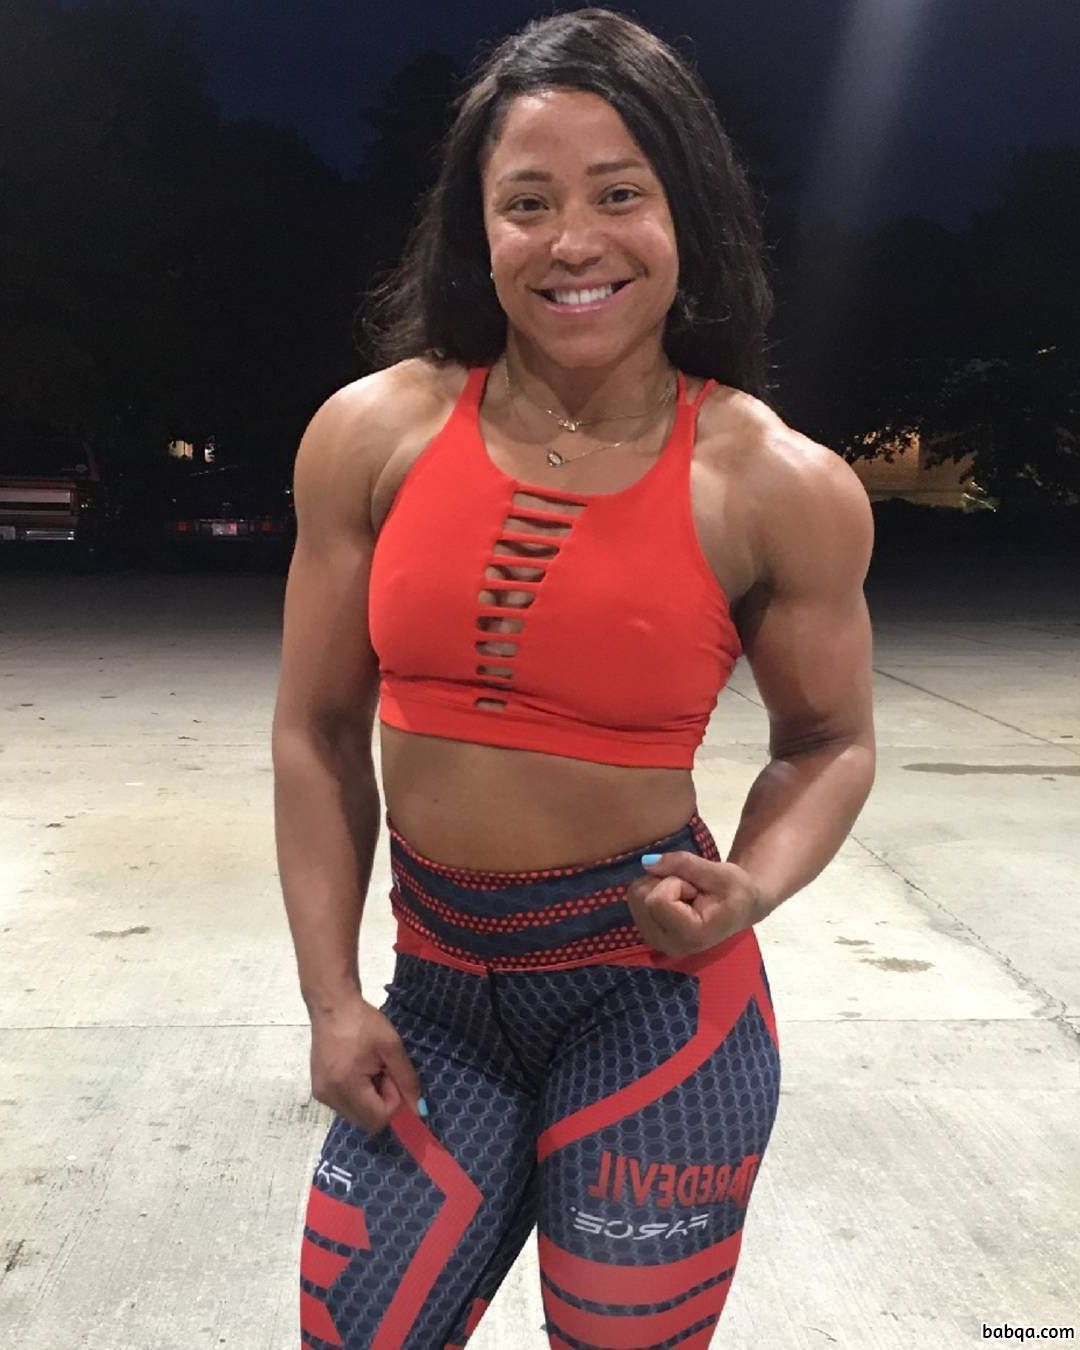 perfect lady with fitness body and muscle legs repost from reddit